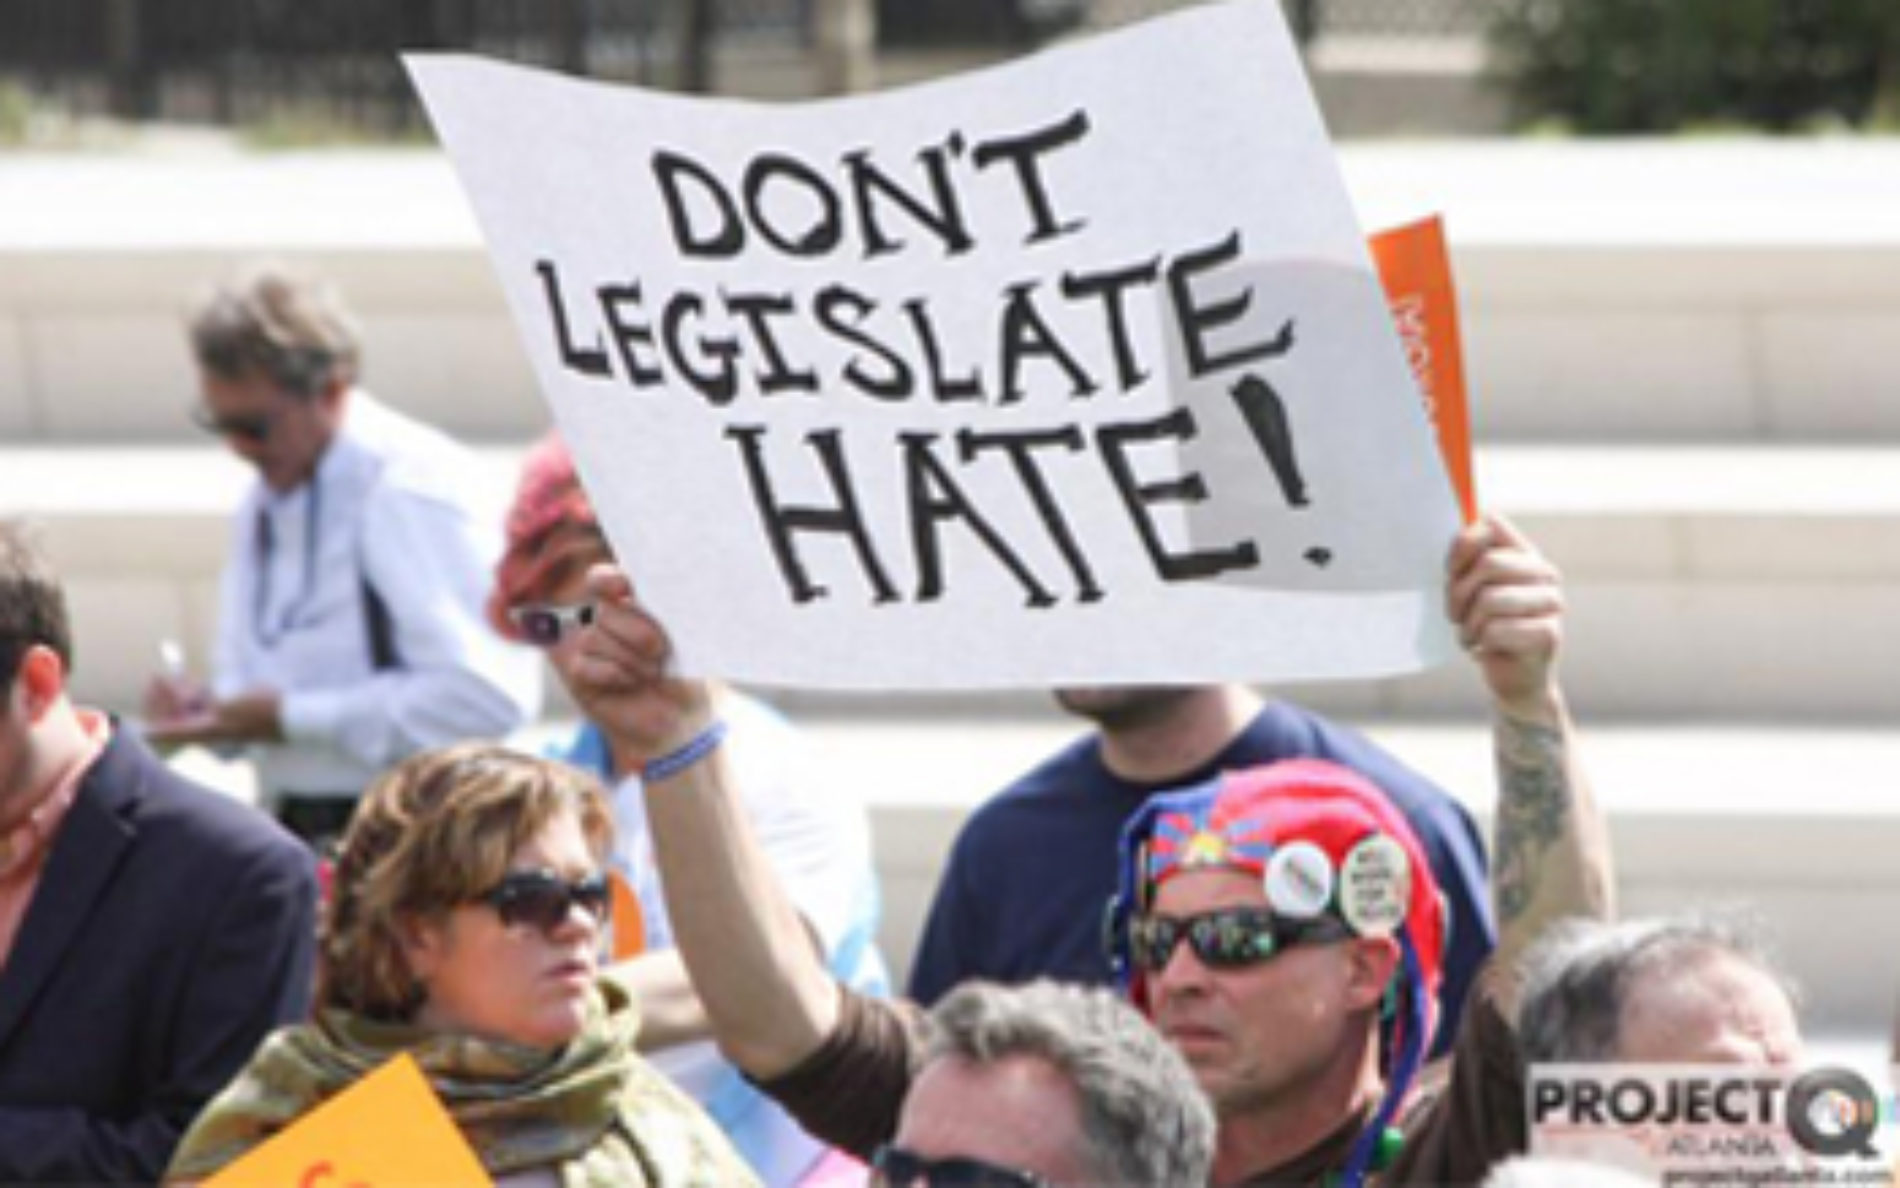 Georgia, USA Could Lose Super Bowls And Hollywood If Antigay Bill Signed